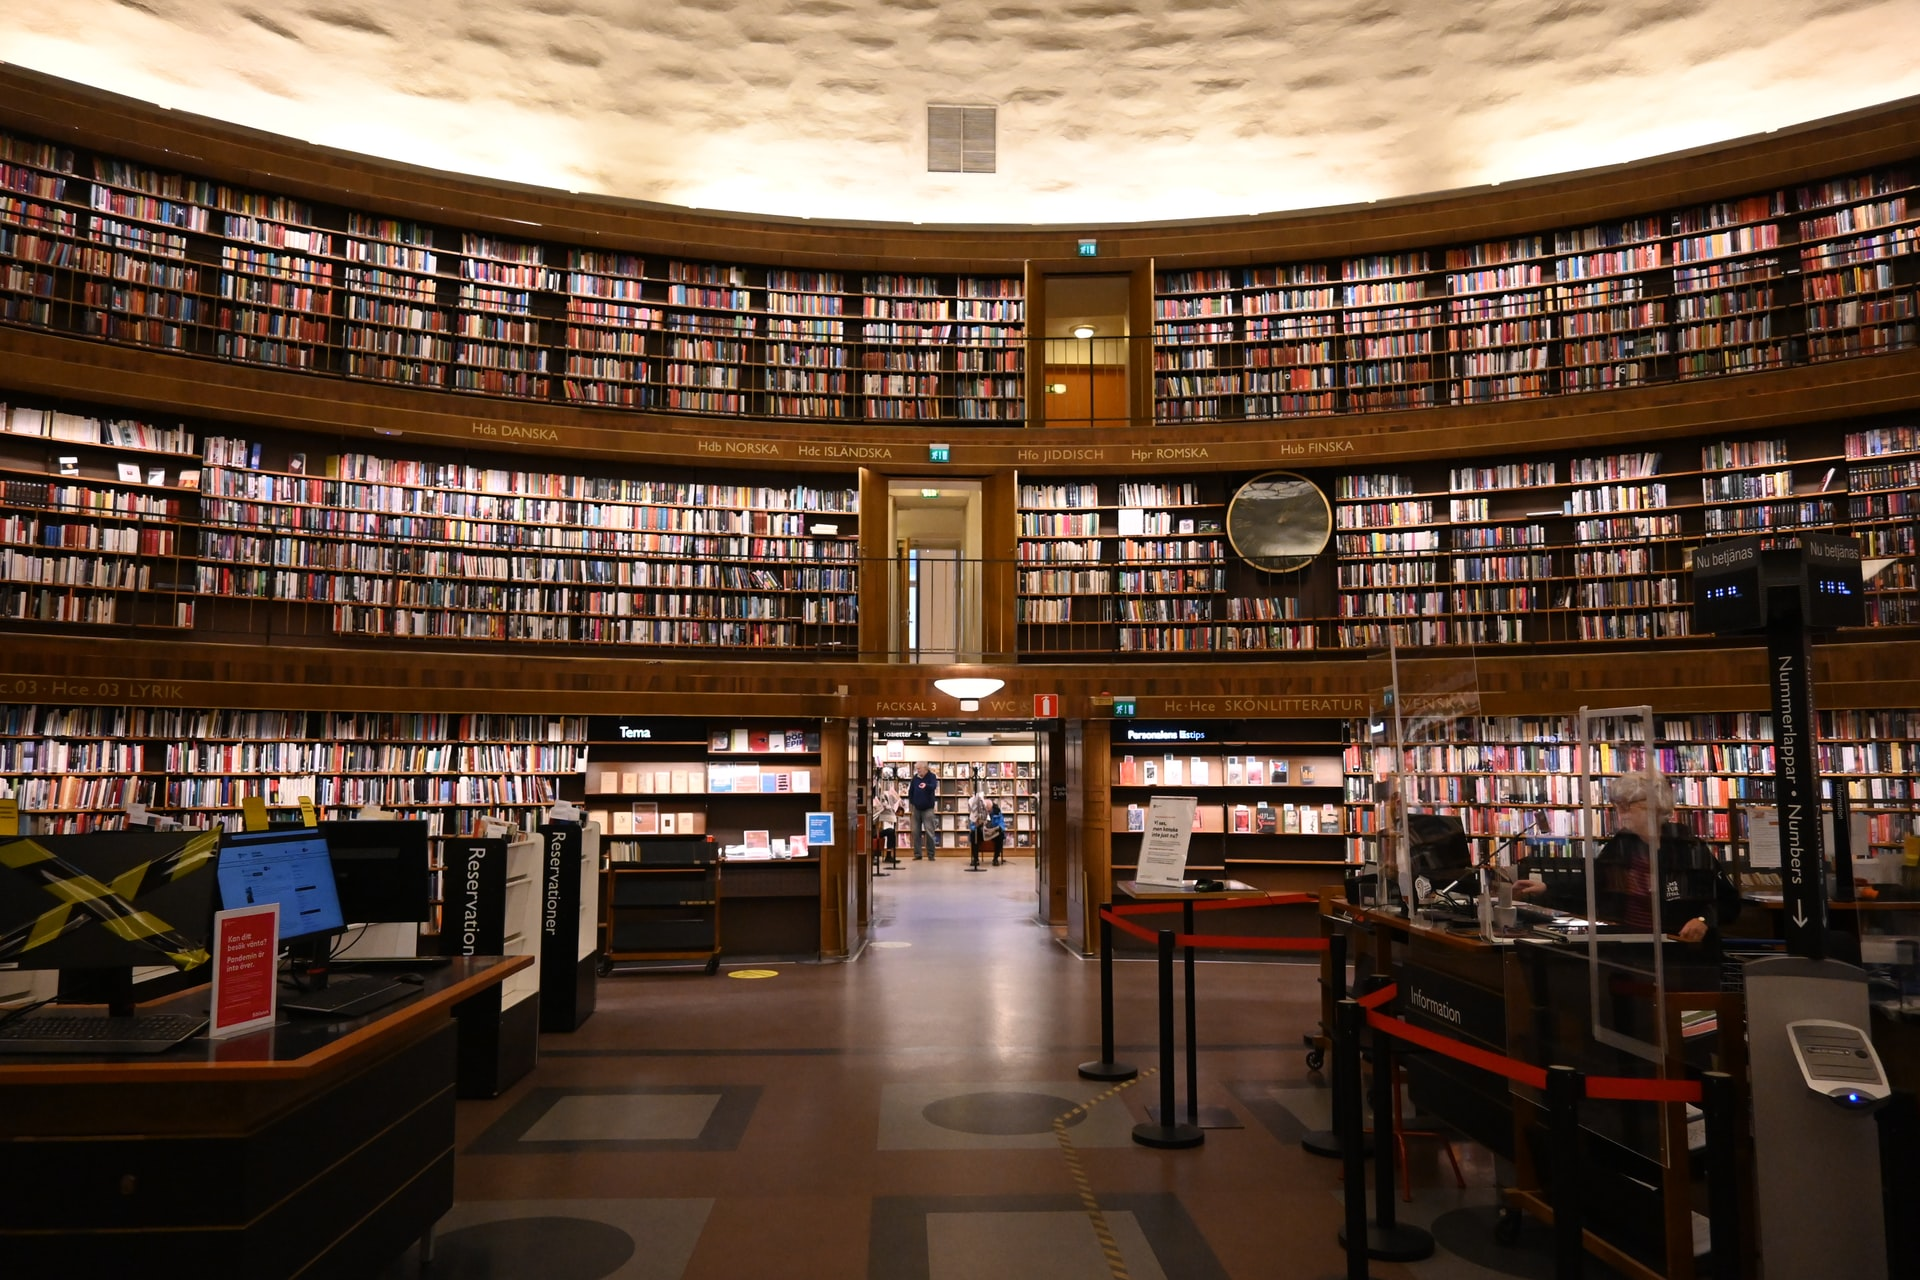 RA21 recommendations. People studying in a library.